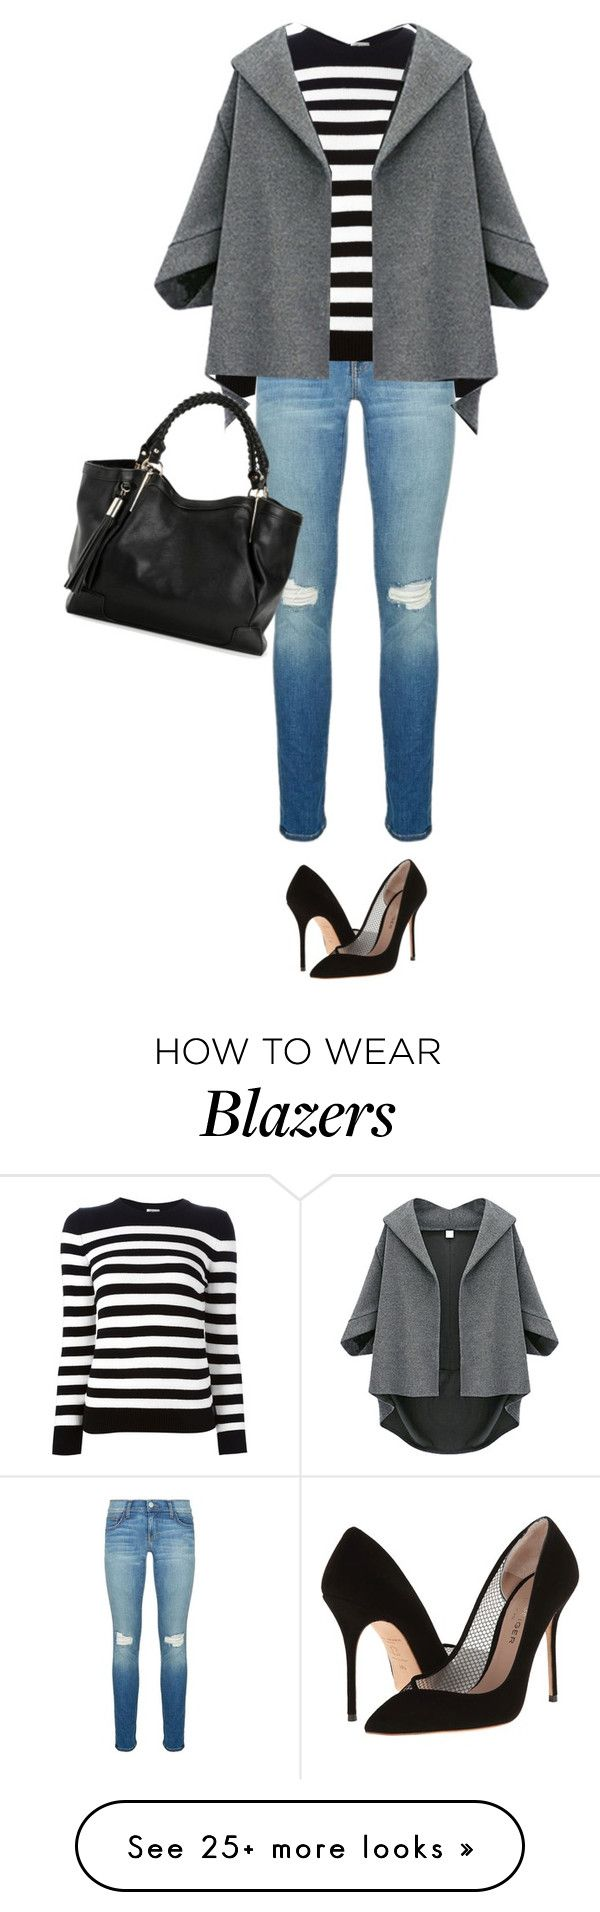 """Untitled #4030"" by linda56draco on Polyvore featuring Rebecca Minkoff, Kurt Geiger and Yves Saint Laurent"